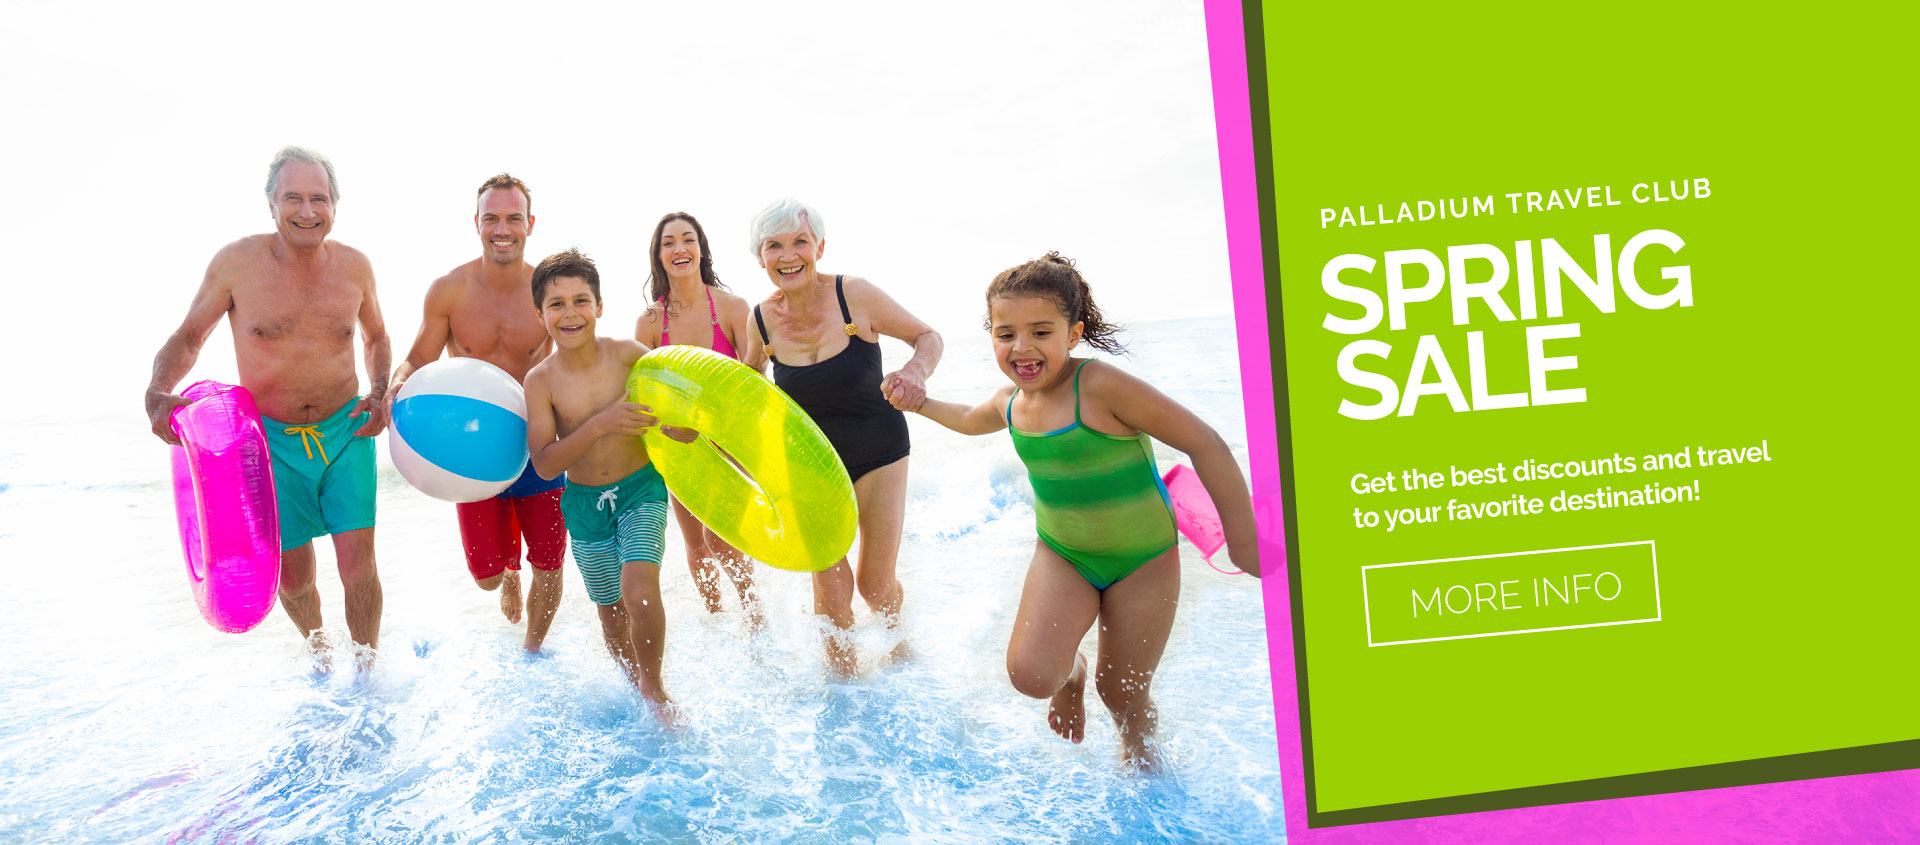 Spring Sale Palladium Travel Club